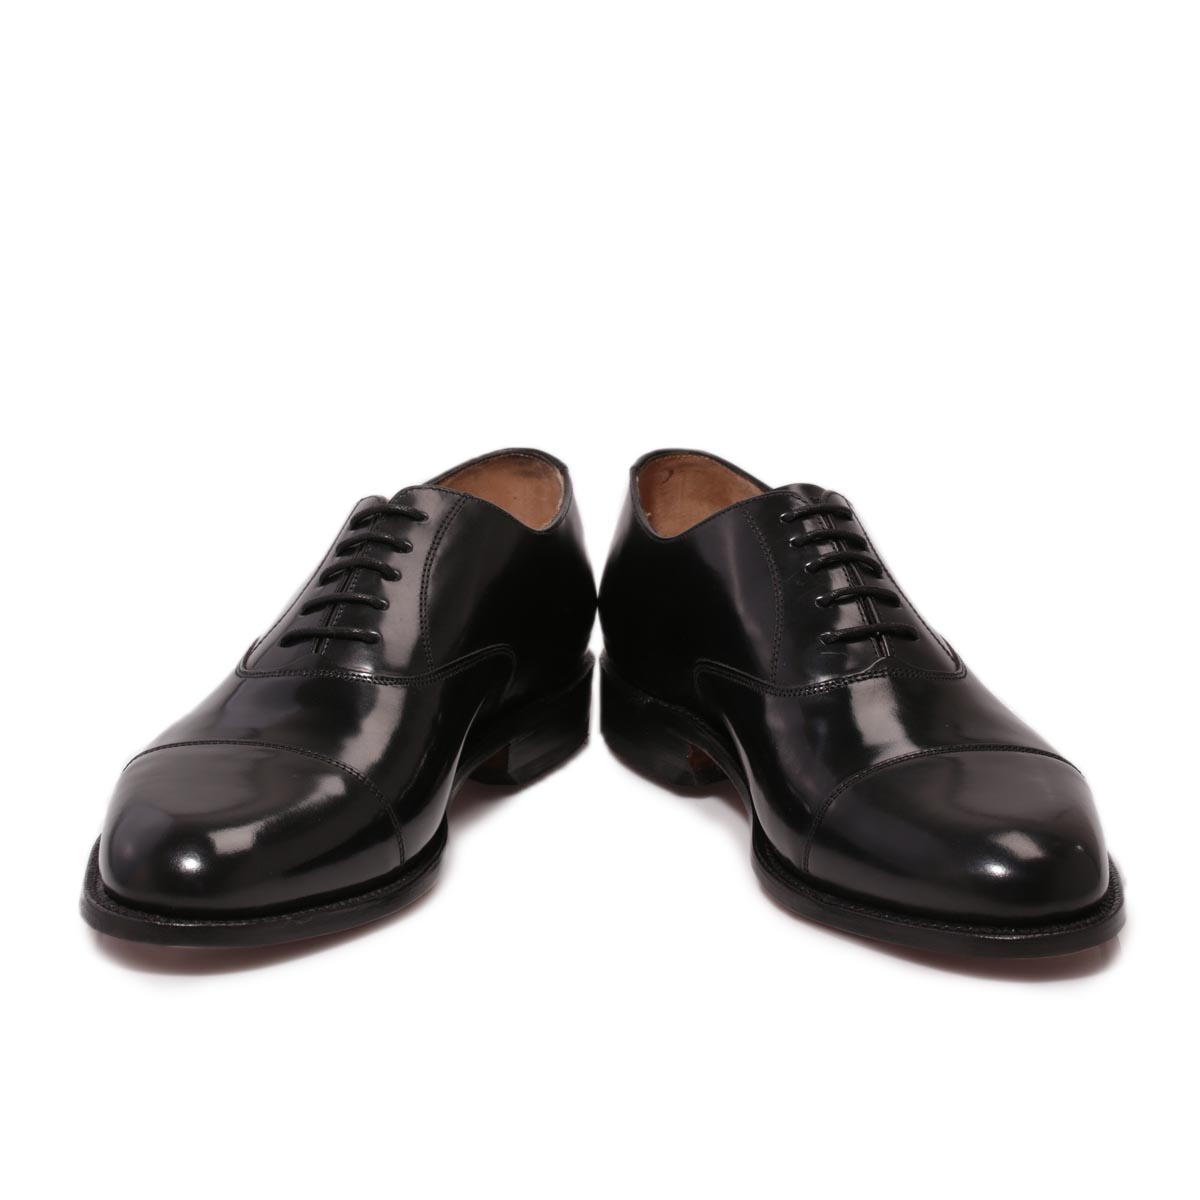 Brown Shoes With Black Leather Watch